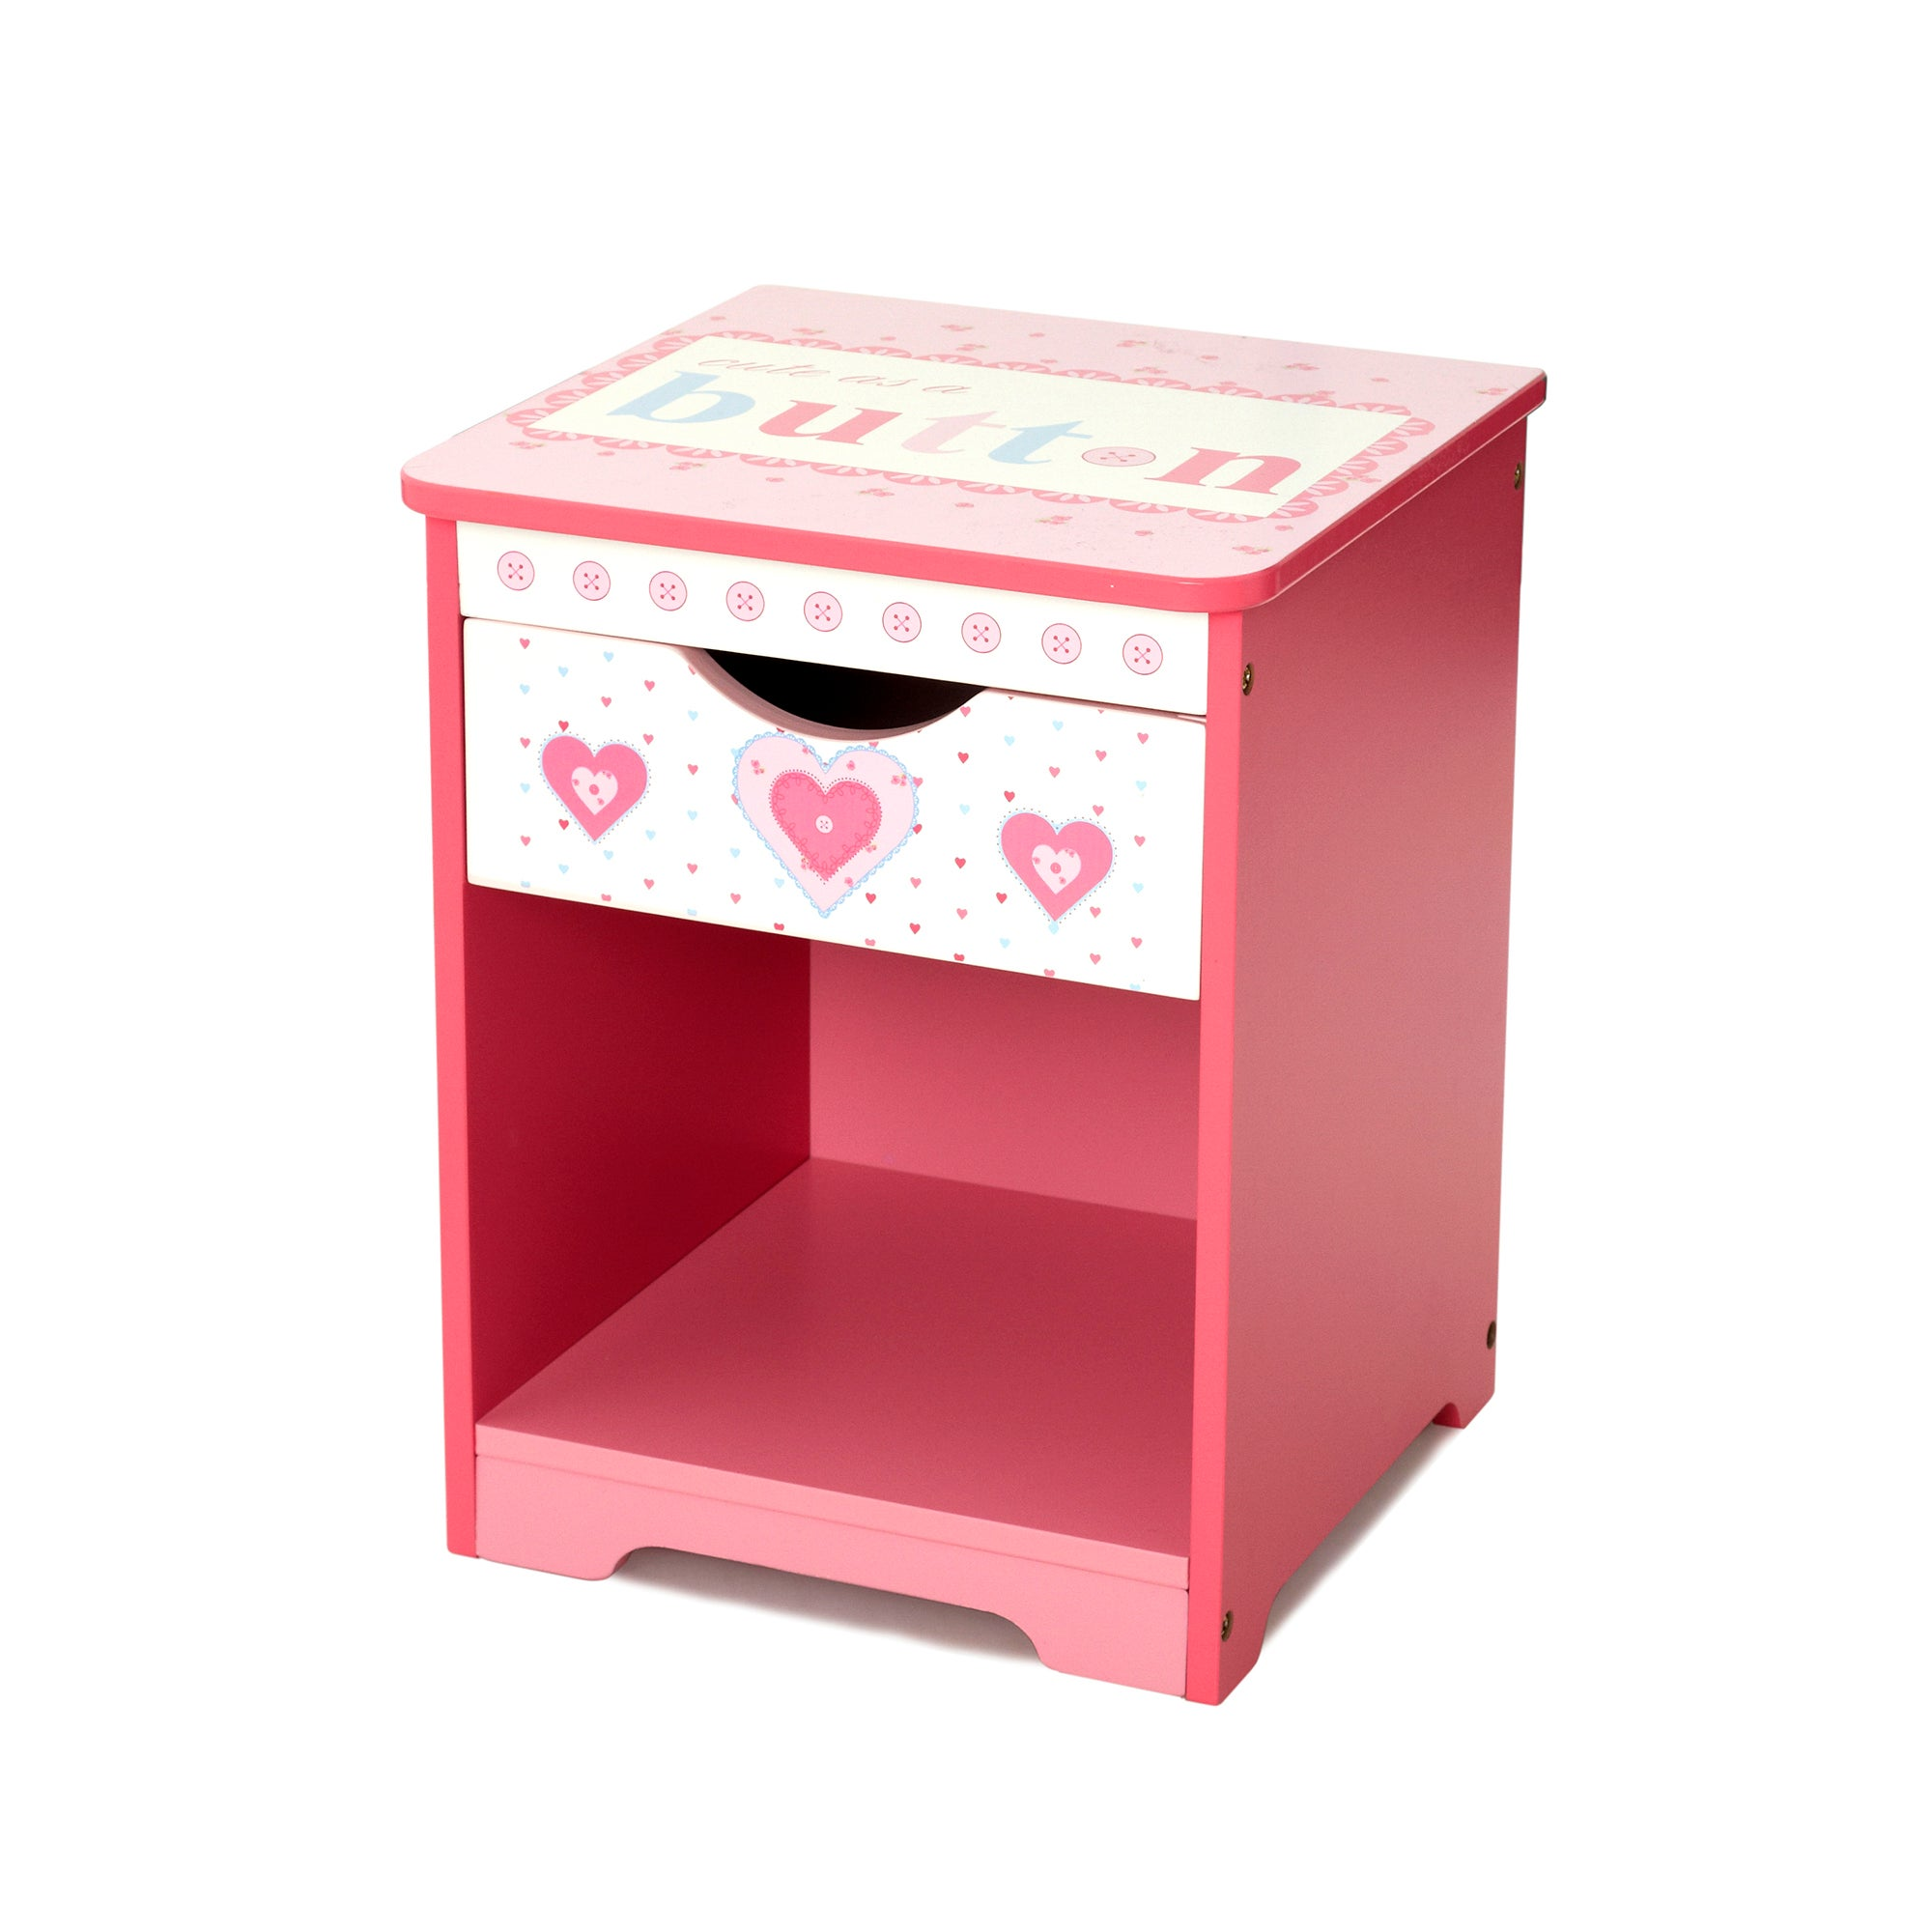 Kids Cute as a Button Collection Bedside Table